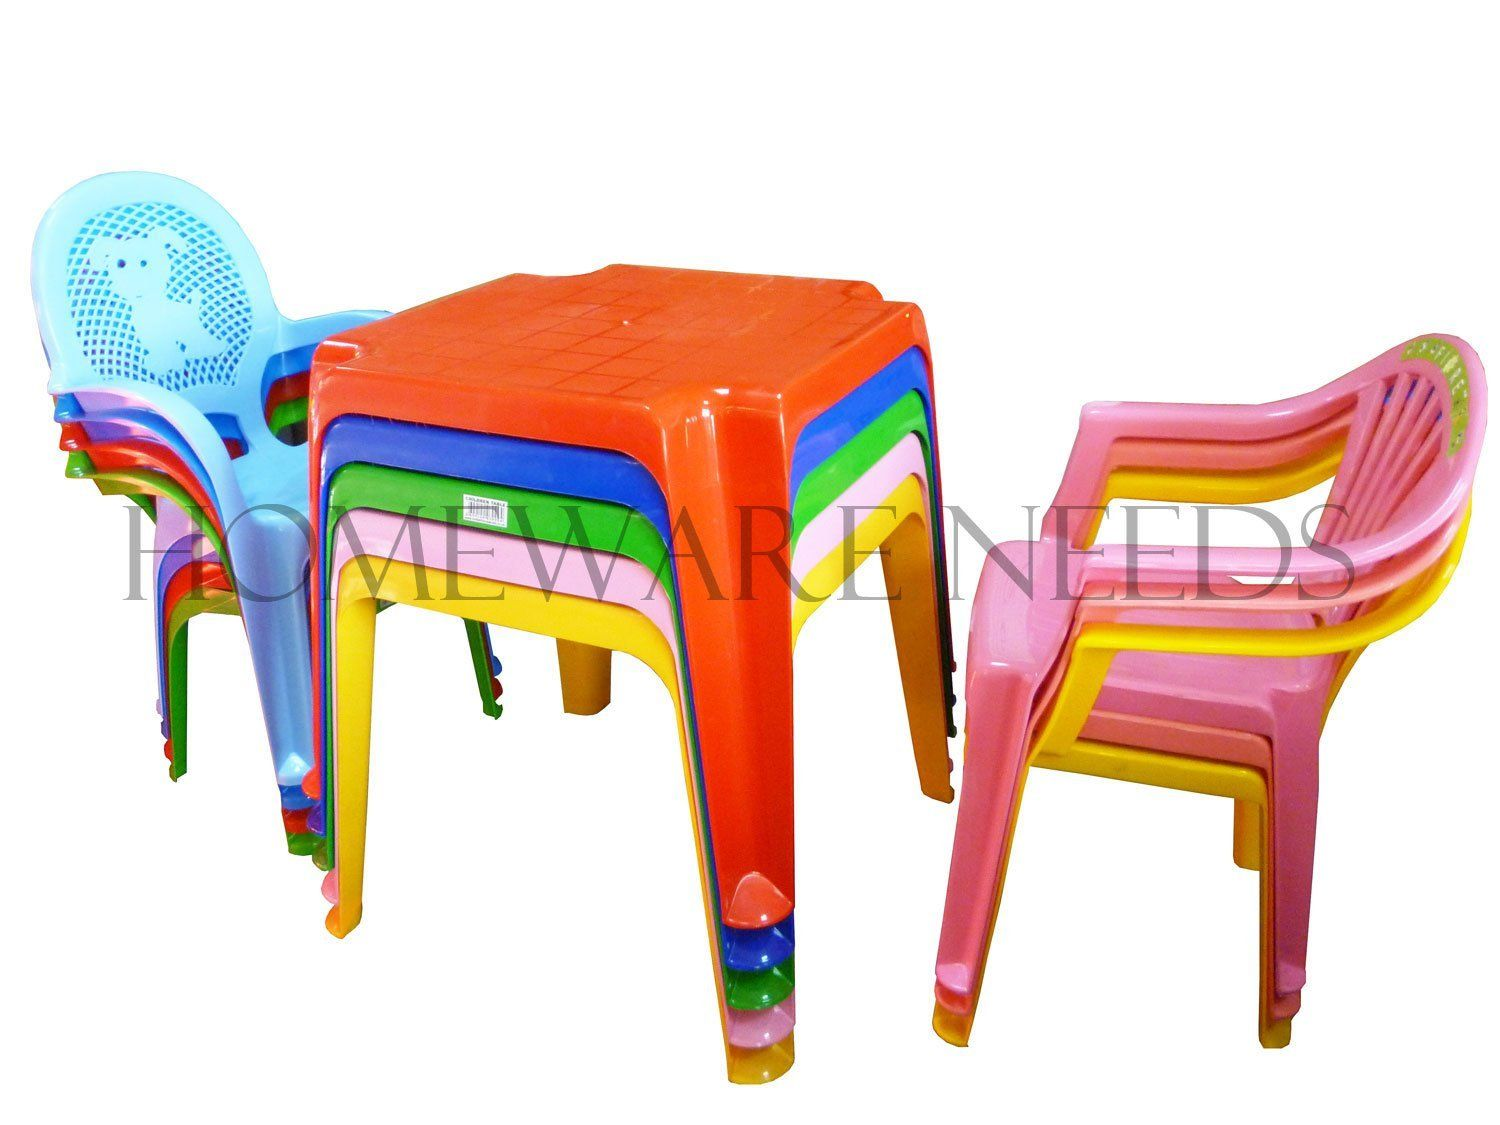 Marvelous Kids Plastic Table And Chairs Childrens Kids Plastic Table Gmtry Best Dining Table And Chair Ideas Images Gmtryco